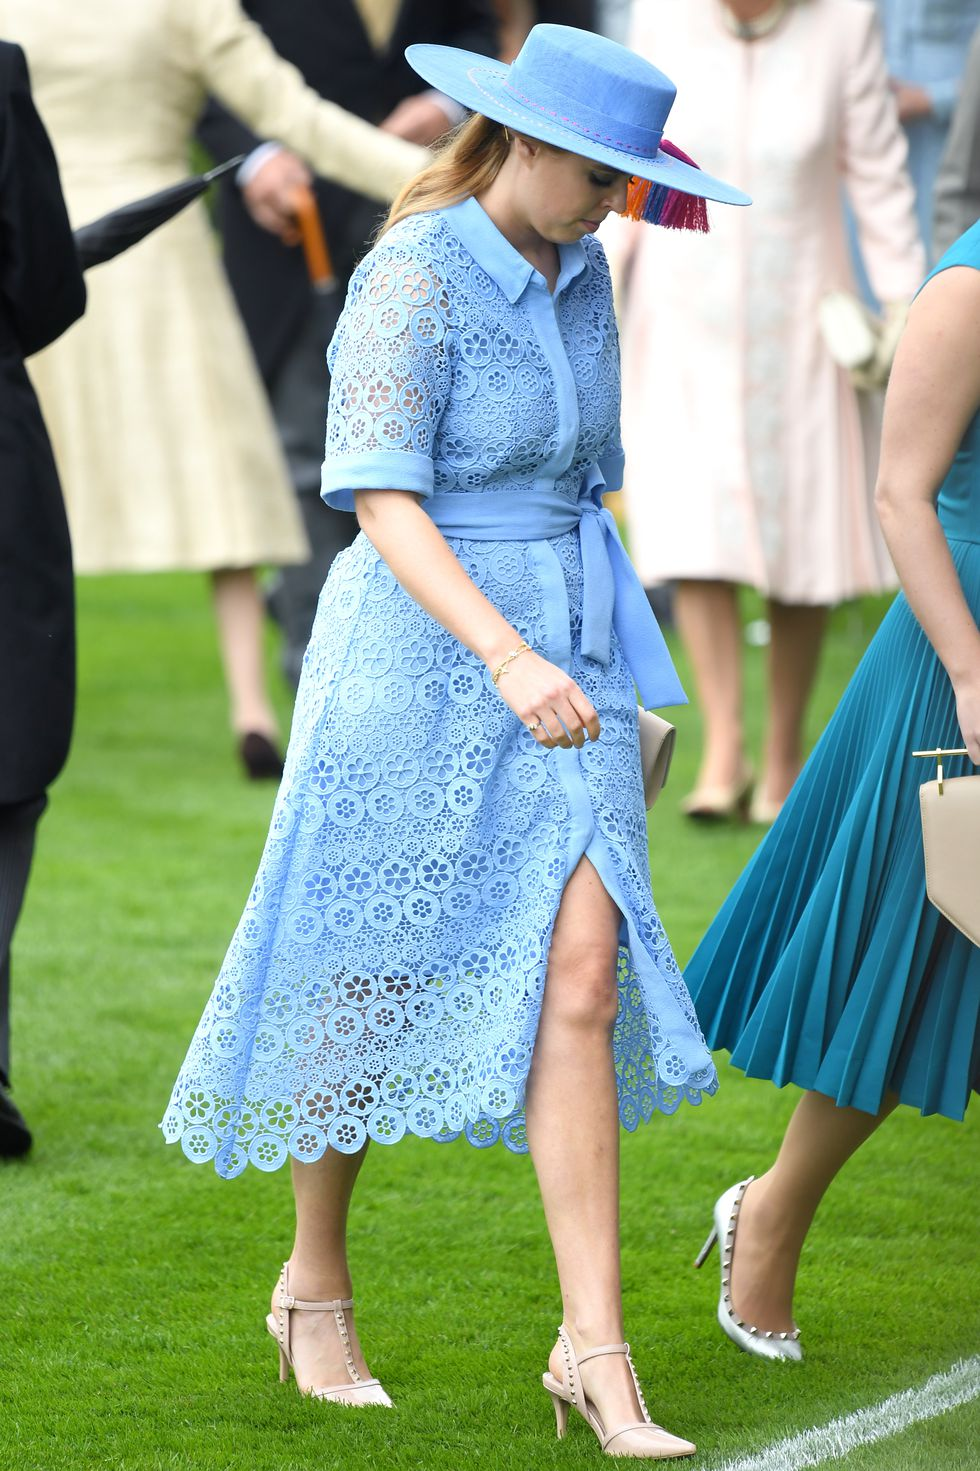 princess-beatrice-of-york-attends-day-one-of-royal-ascot-at-news-photo-1156770166-1560932583.jpg